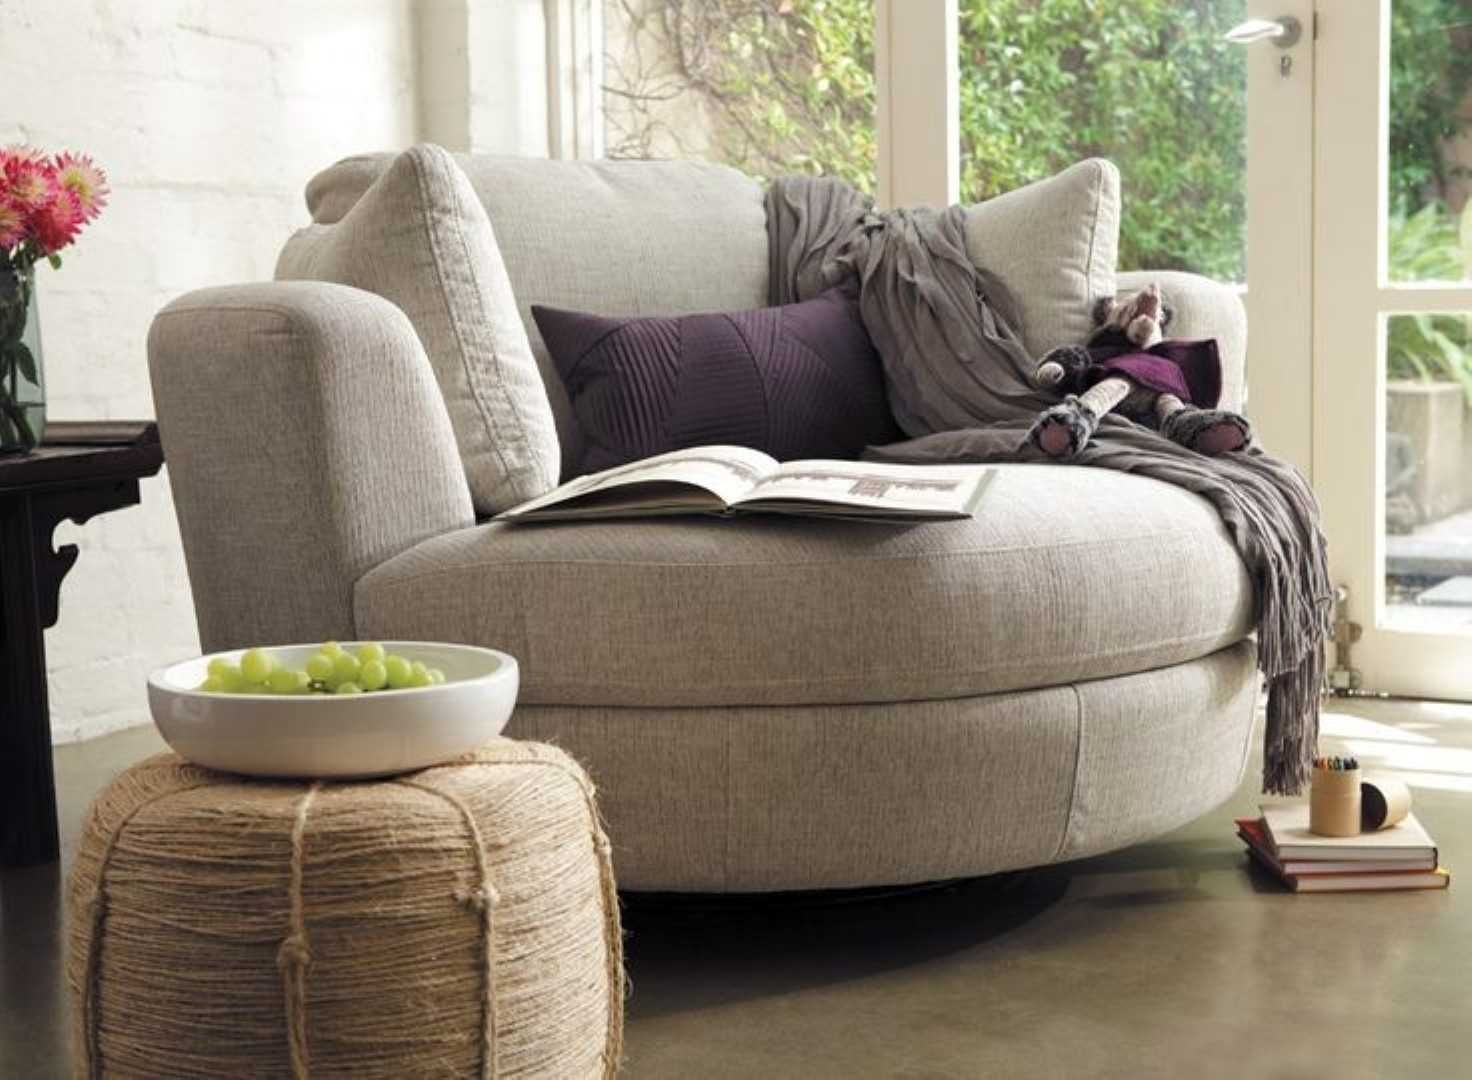 Most Comfortable Living Room Chair Home Interior Design Ideas Comfortable Living Room Furniture Comfortable Living Room Chairs Comfortable Living Rooms